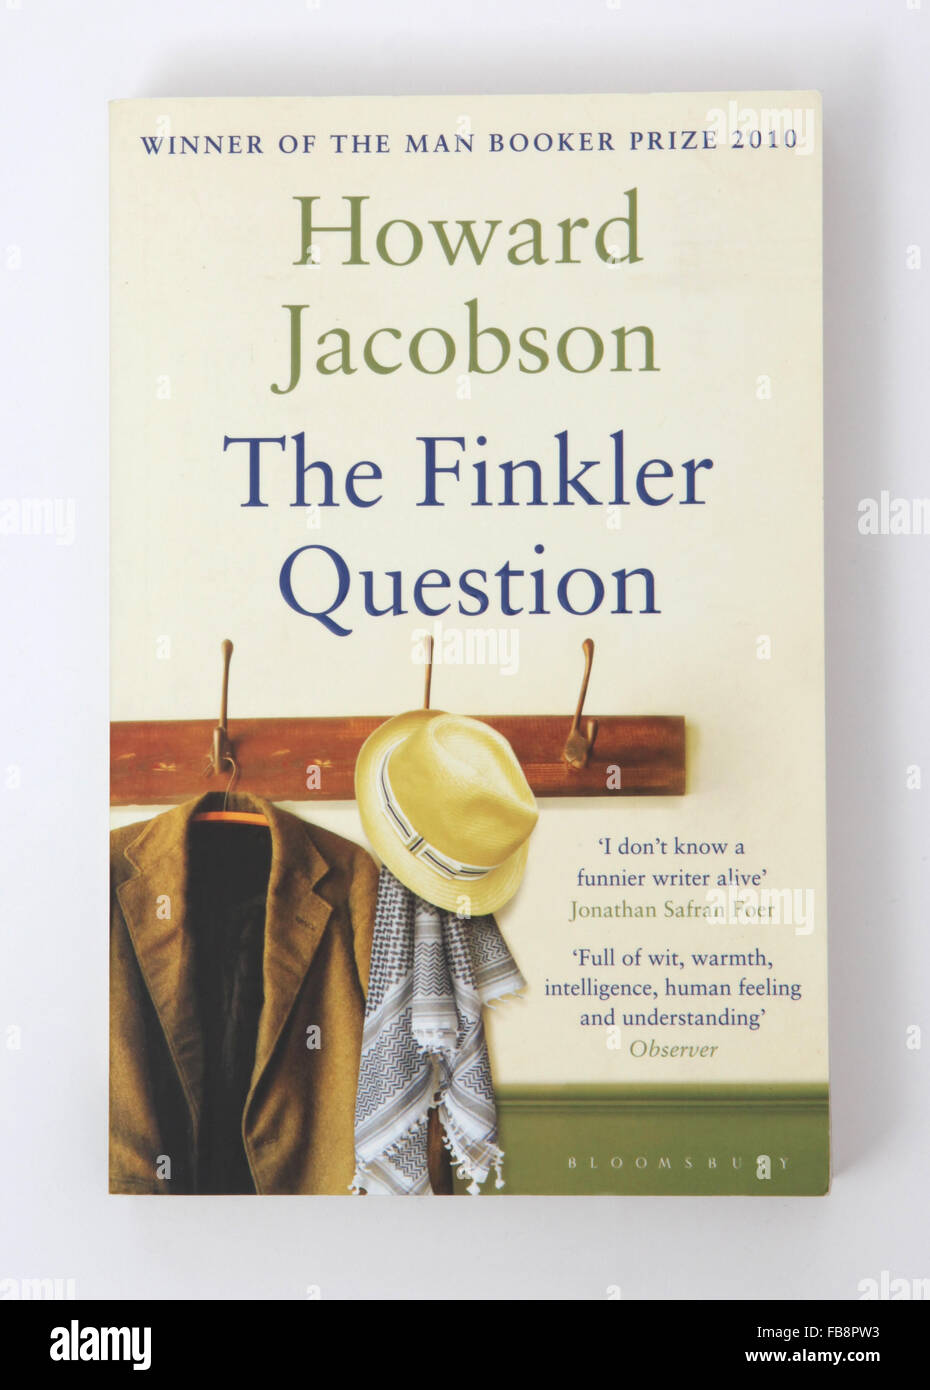 The book - The Finkler Question. Winner of The Man Booker Prize 2010 - Stock Image